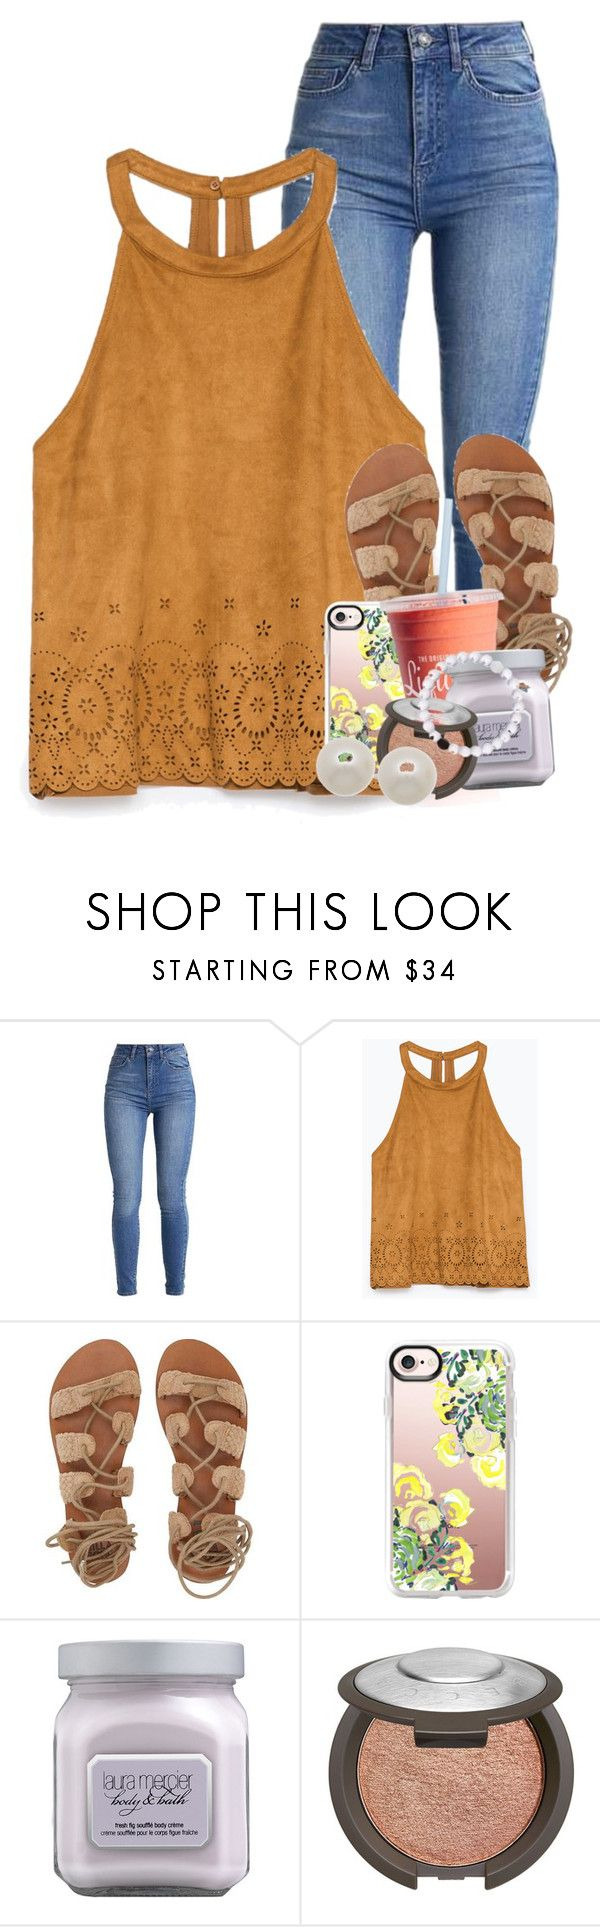 """""""THANK YOU FOR 100 ❤️"""" by emilyandella ❤ liked on Polyvore featuring Zara, Billabong, Casetify, Laura Mercier, Becca and Honora"""